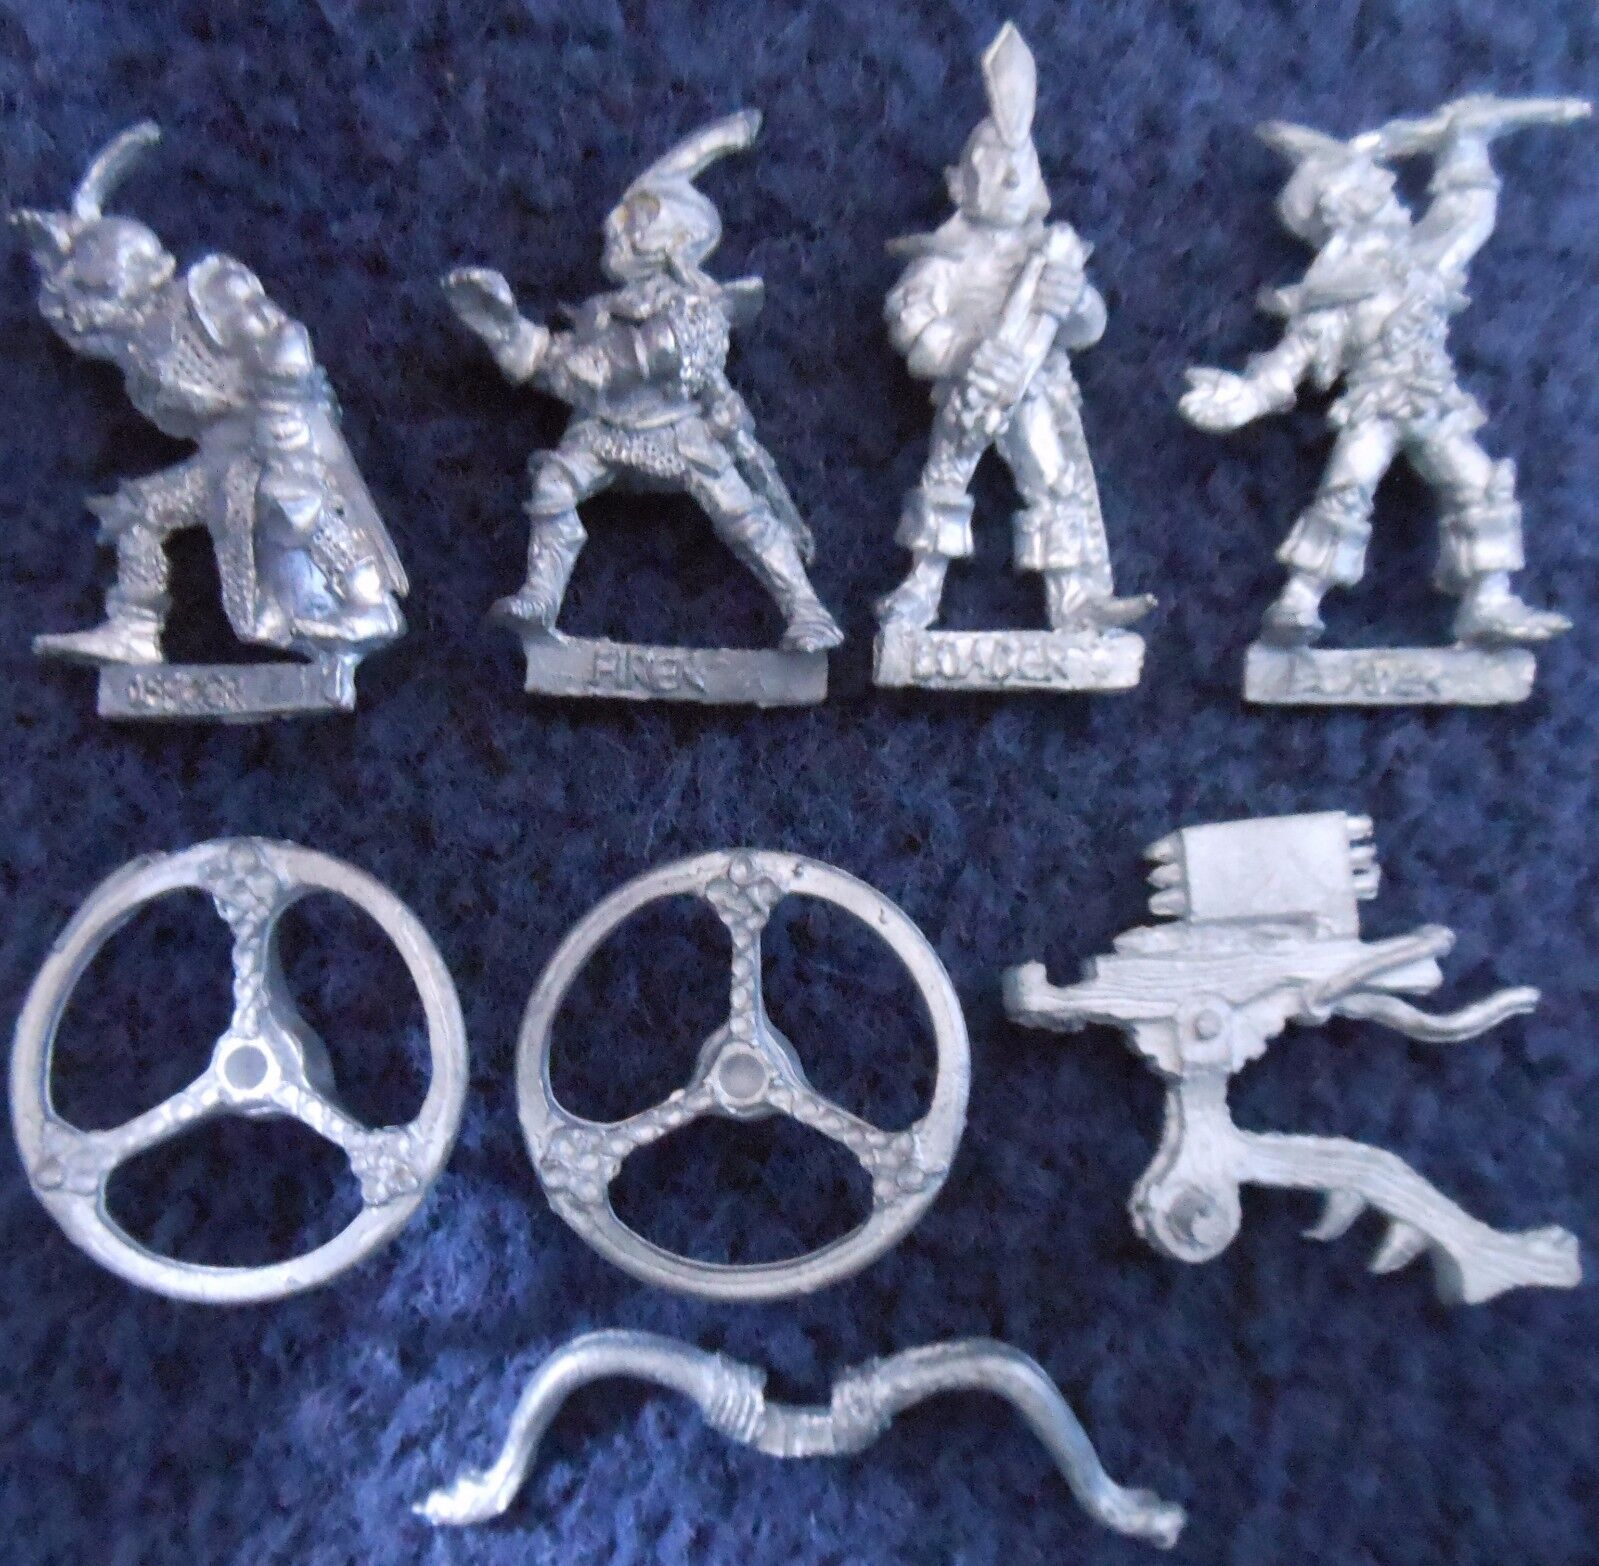 1987 Dark Elf C22 Repeating Crossbow Citadel Drow Repeater Bolt Thrower XBow GW